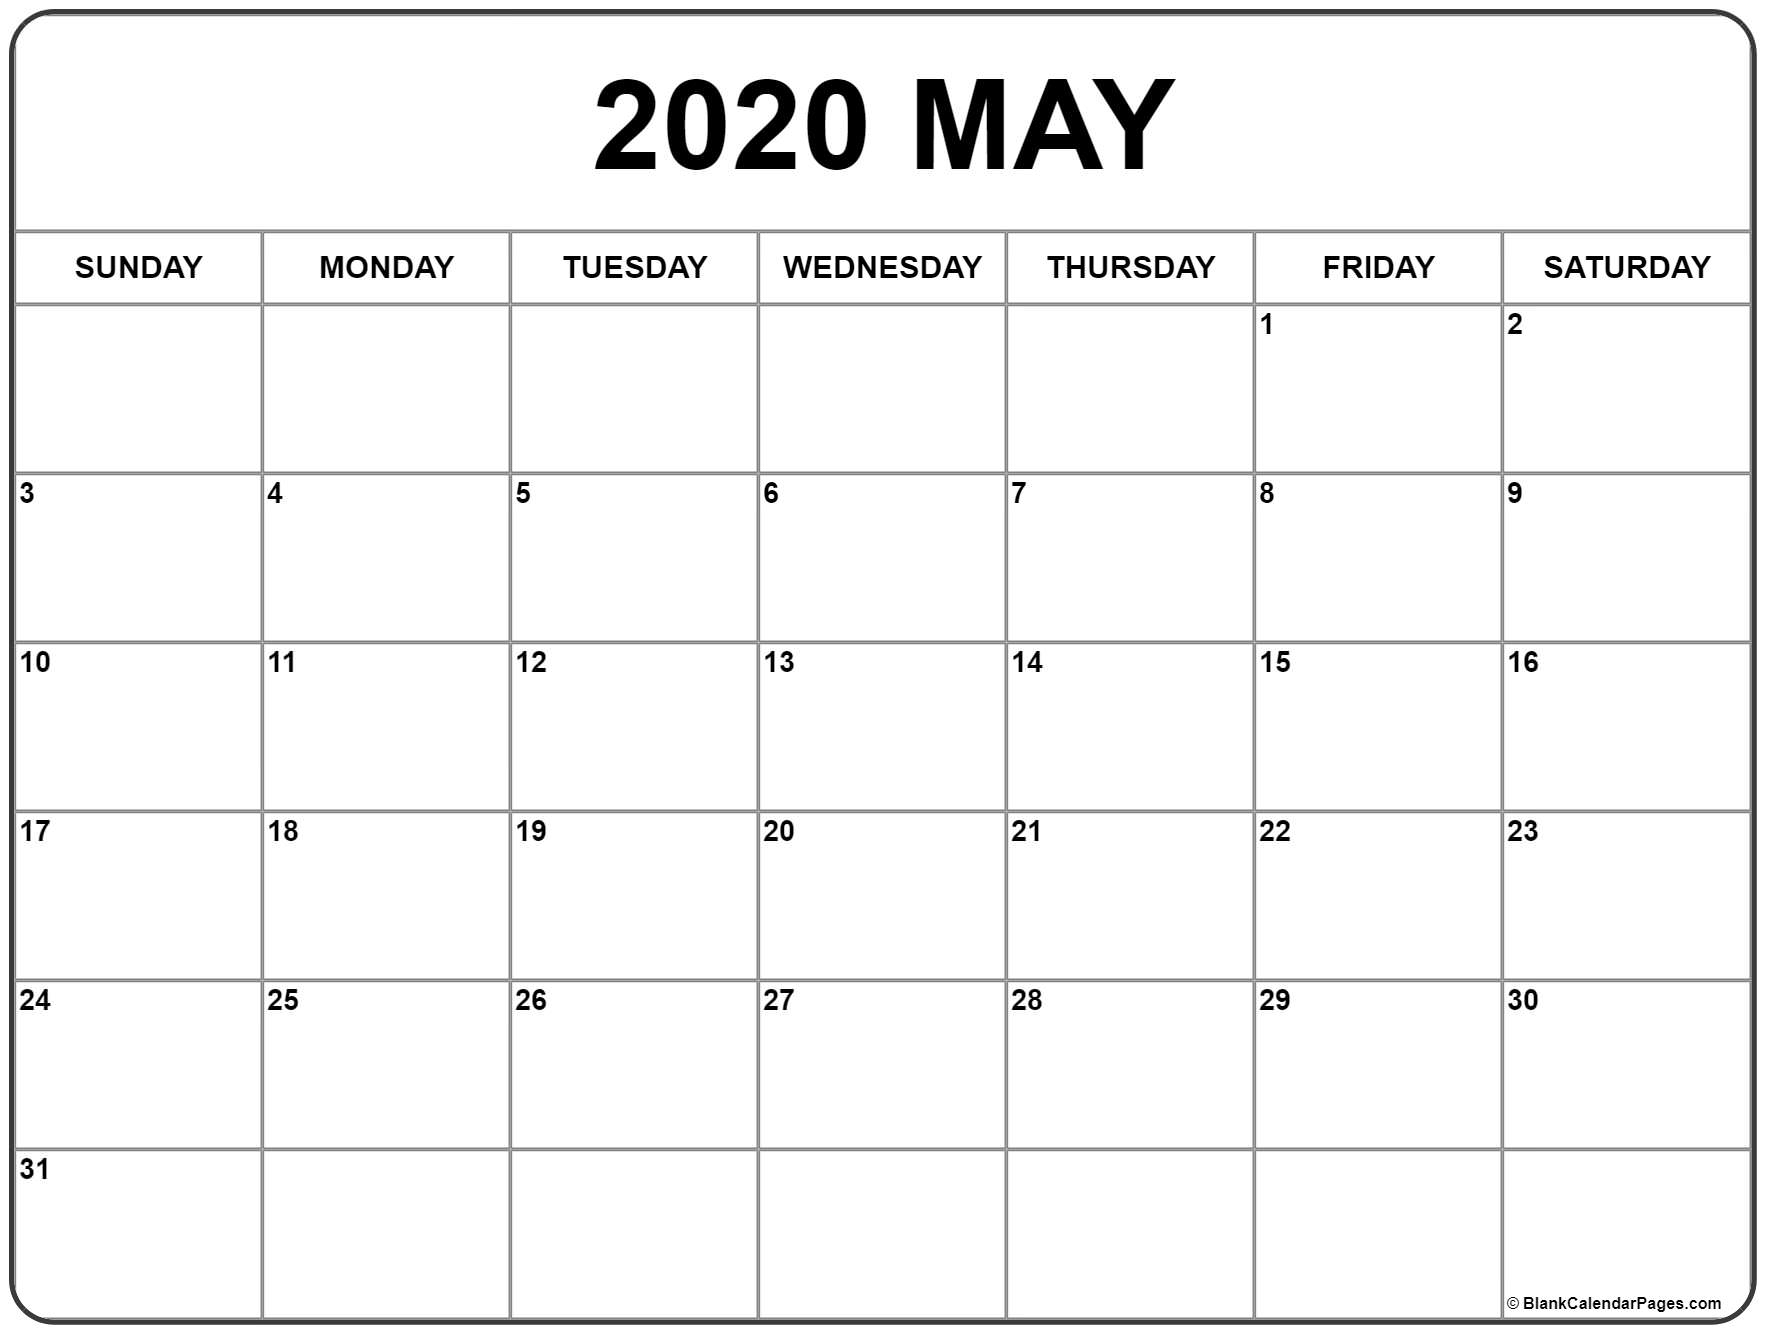 May 2020 Calendar Space Note